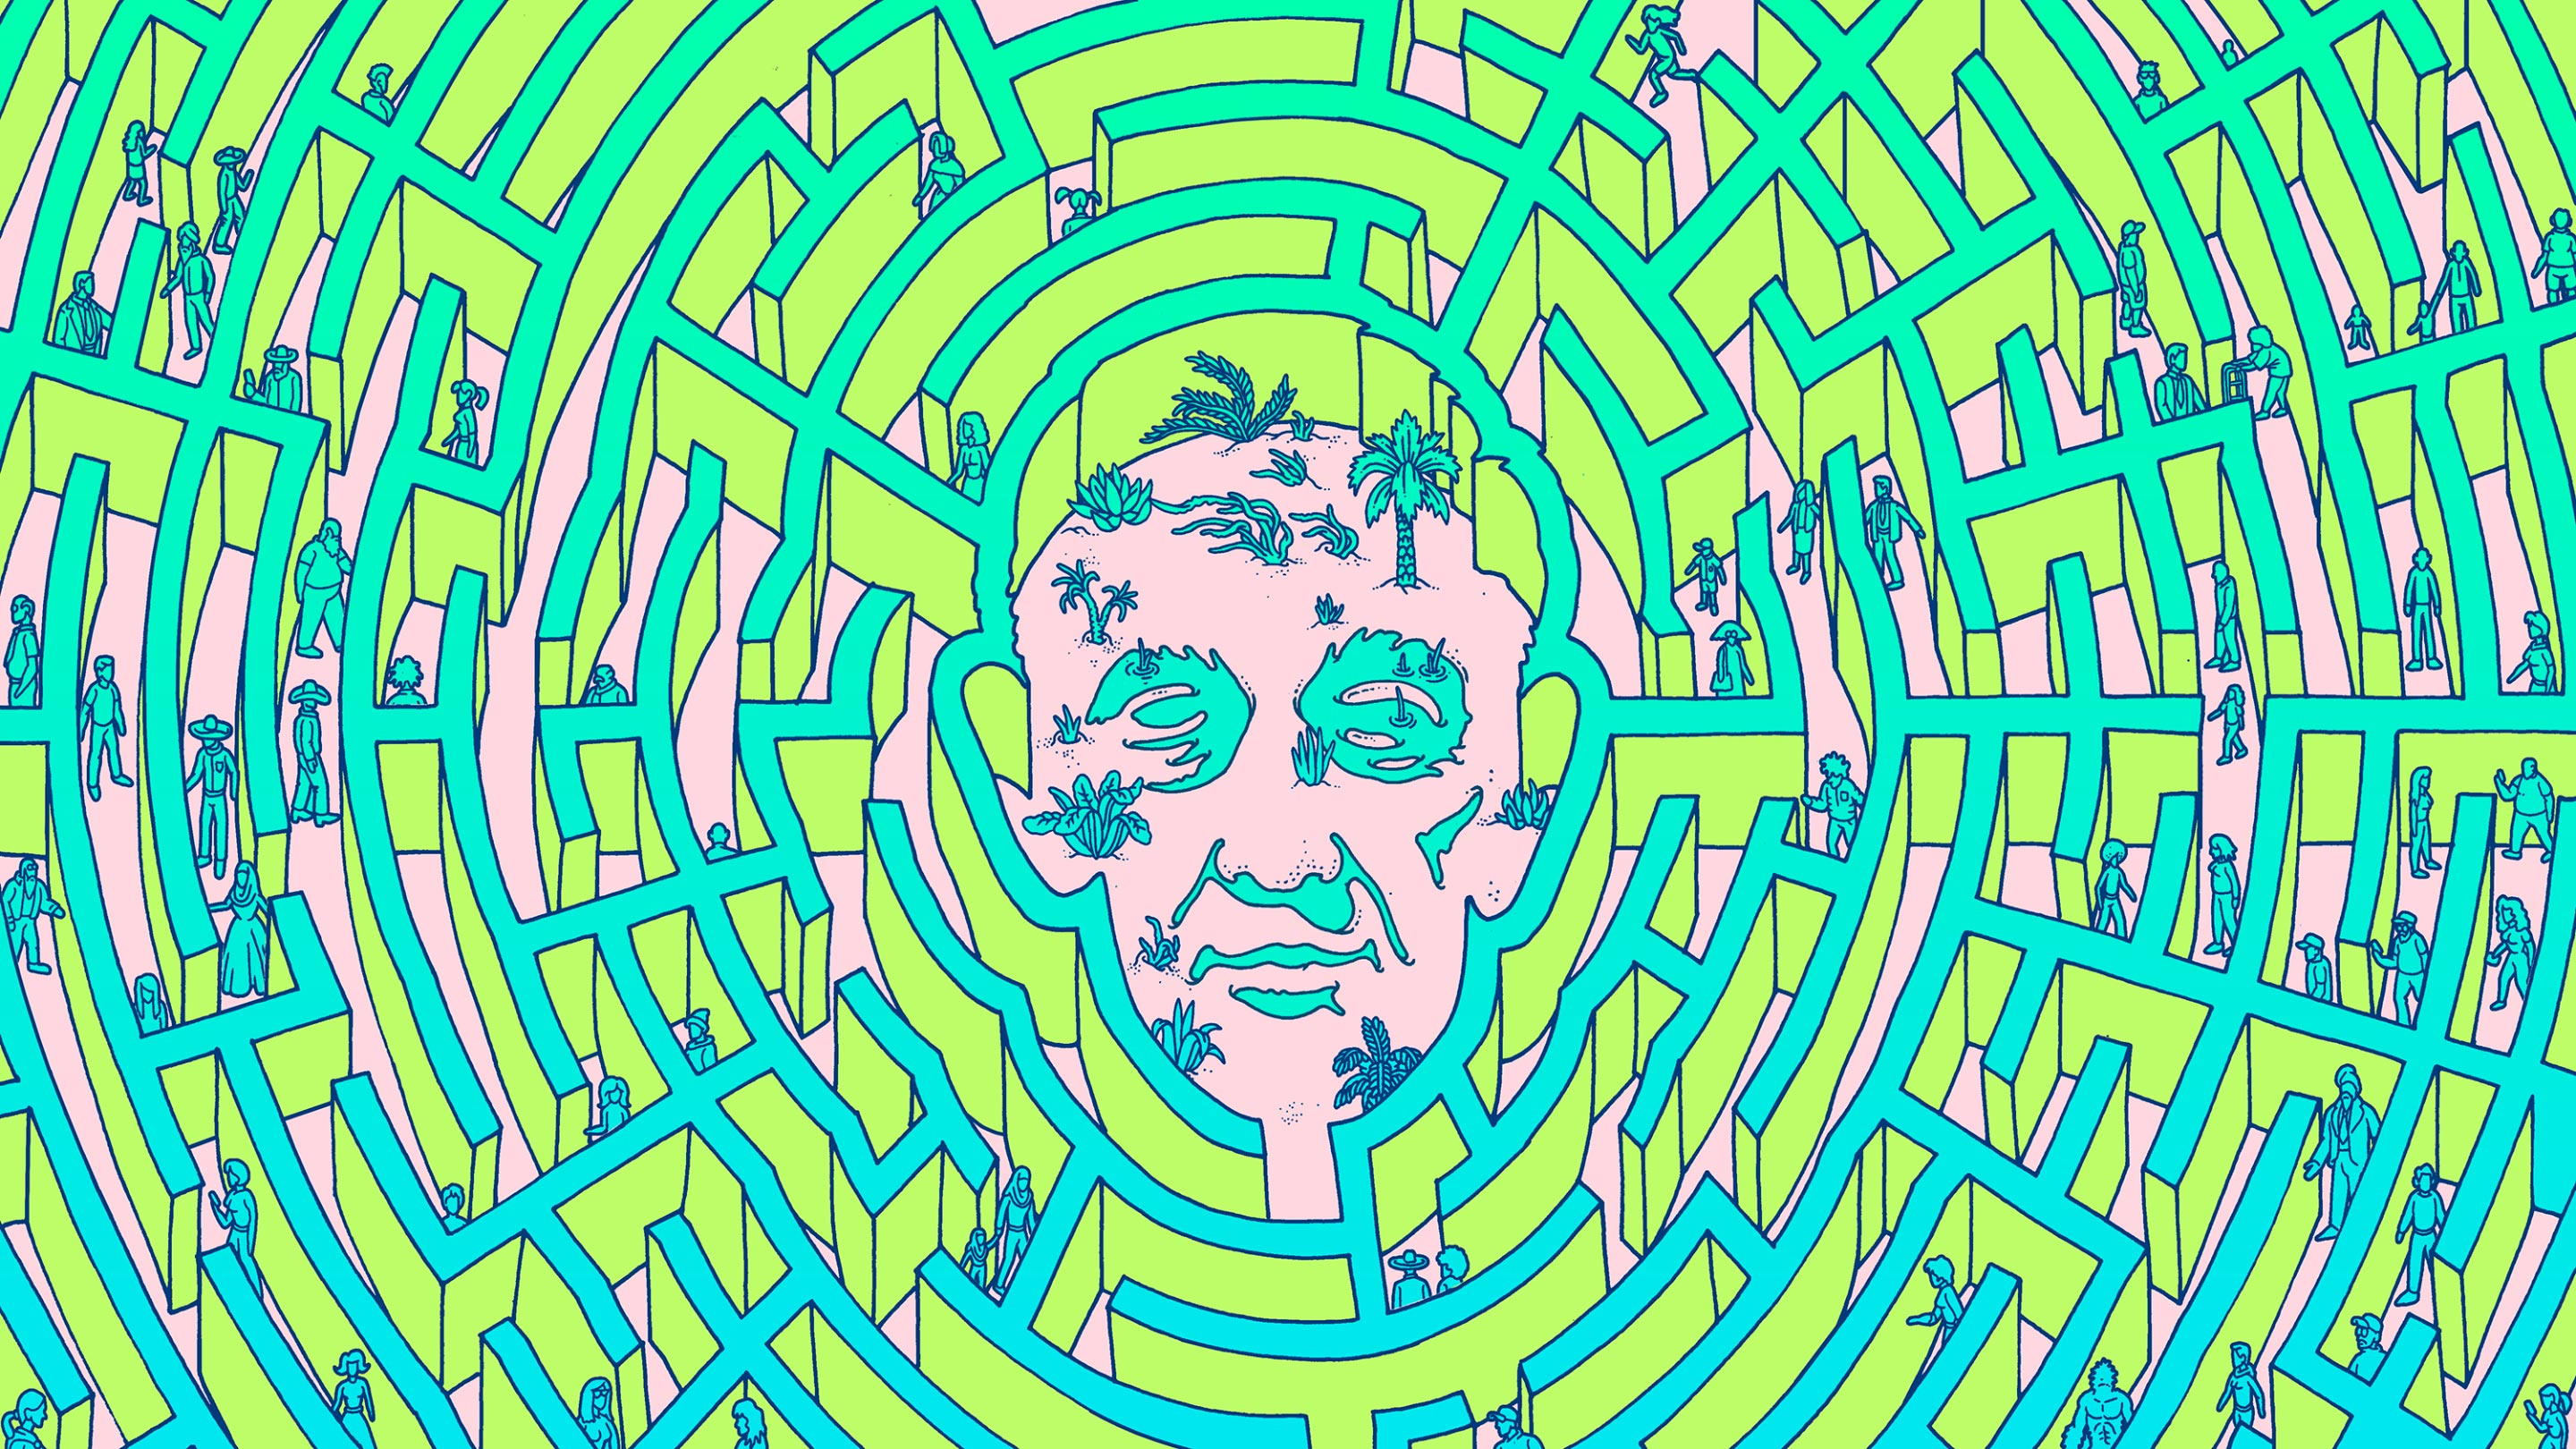 In Game Theory, No Clear Path to Equilibrium | Quanta Magazine